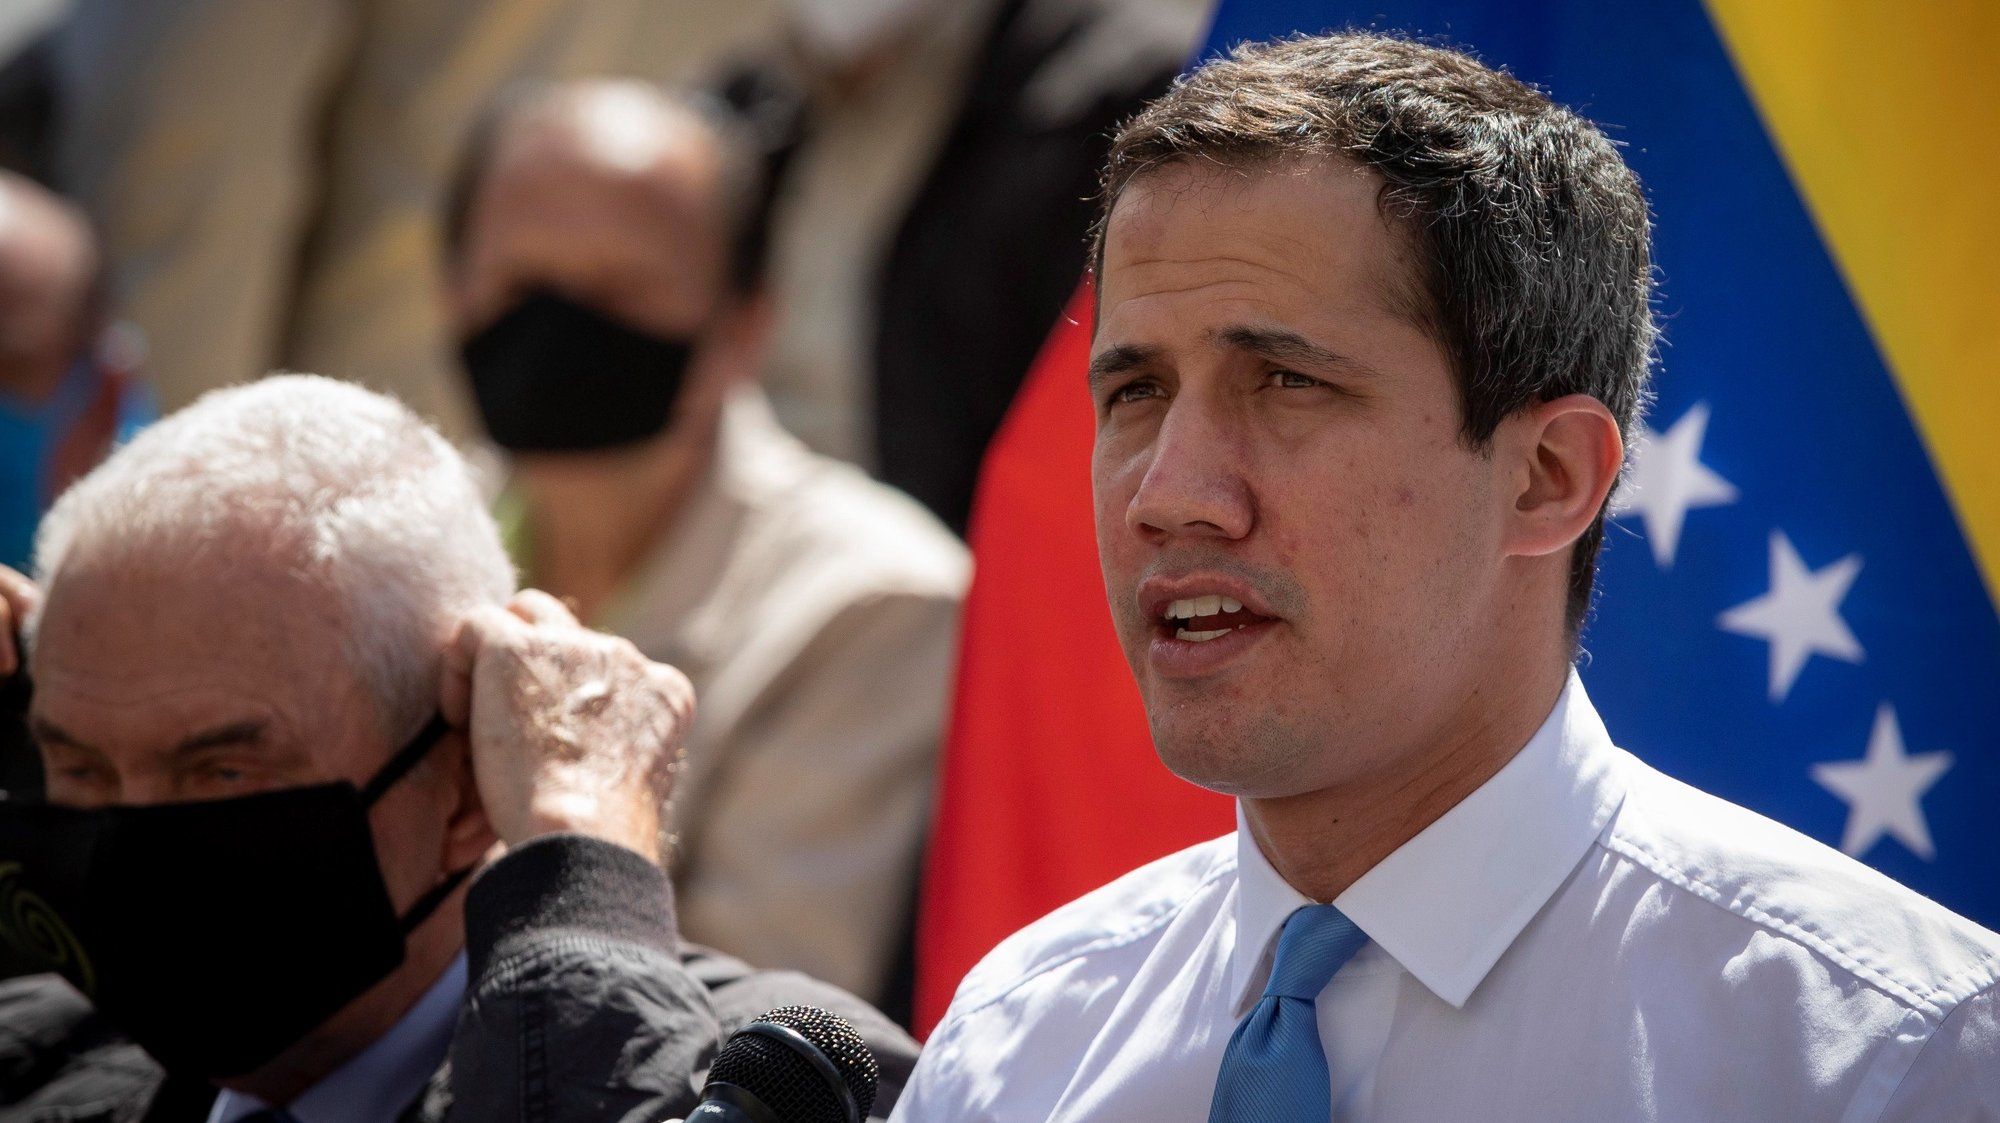 epa08985494 Venezuelan opposition leader Juan Guaido speaks during a press conference in Caracas, Venezuela, 03 February 2021. Guaido said that he is willing to seek resources for Venezuela to enter the COVAX vaccination program against covid-19, but indicated that its implementation depends on the Government of Nicolas Maduro accepting the scheme of the Pan American Health Organization (PAHO). On 20 January 2021, the lawyers of the board of the Central Bank of Venezuela (BCV) appointed by Maduro denounced that Guaido's team prevented access to funds in London that would allow participation in the Covax Mechanism.  EPA/RAYNER PENA R